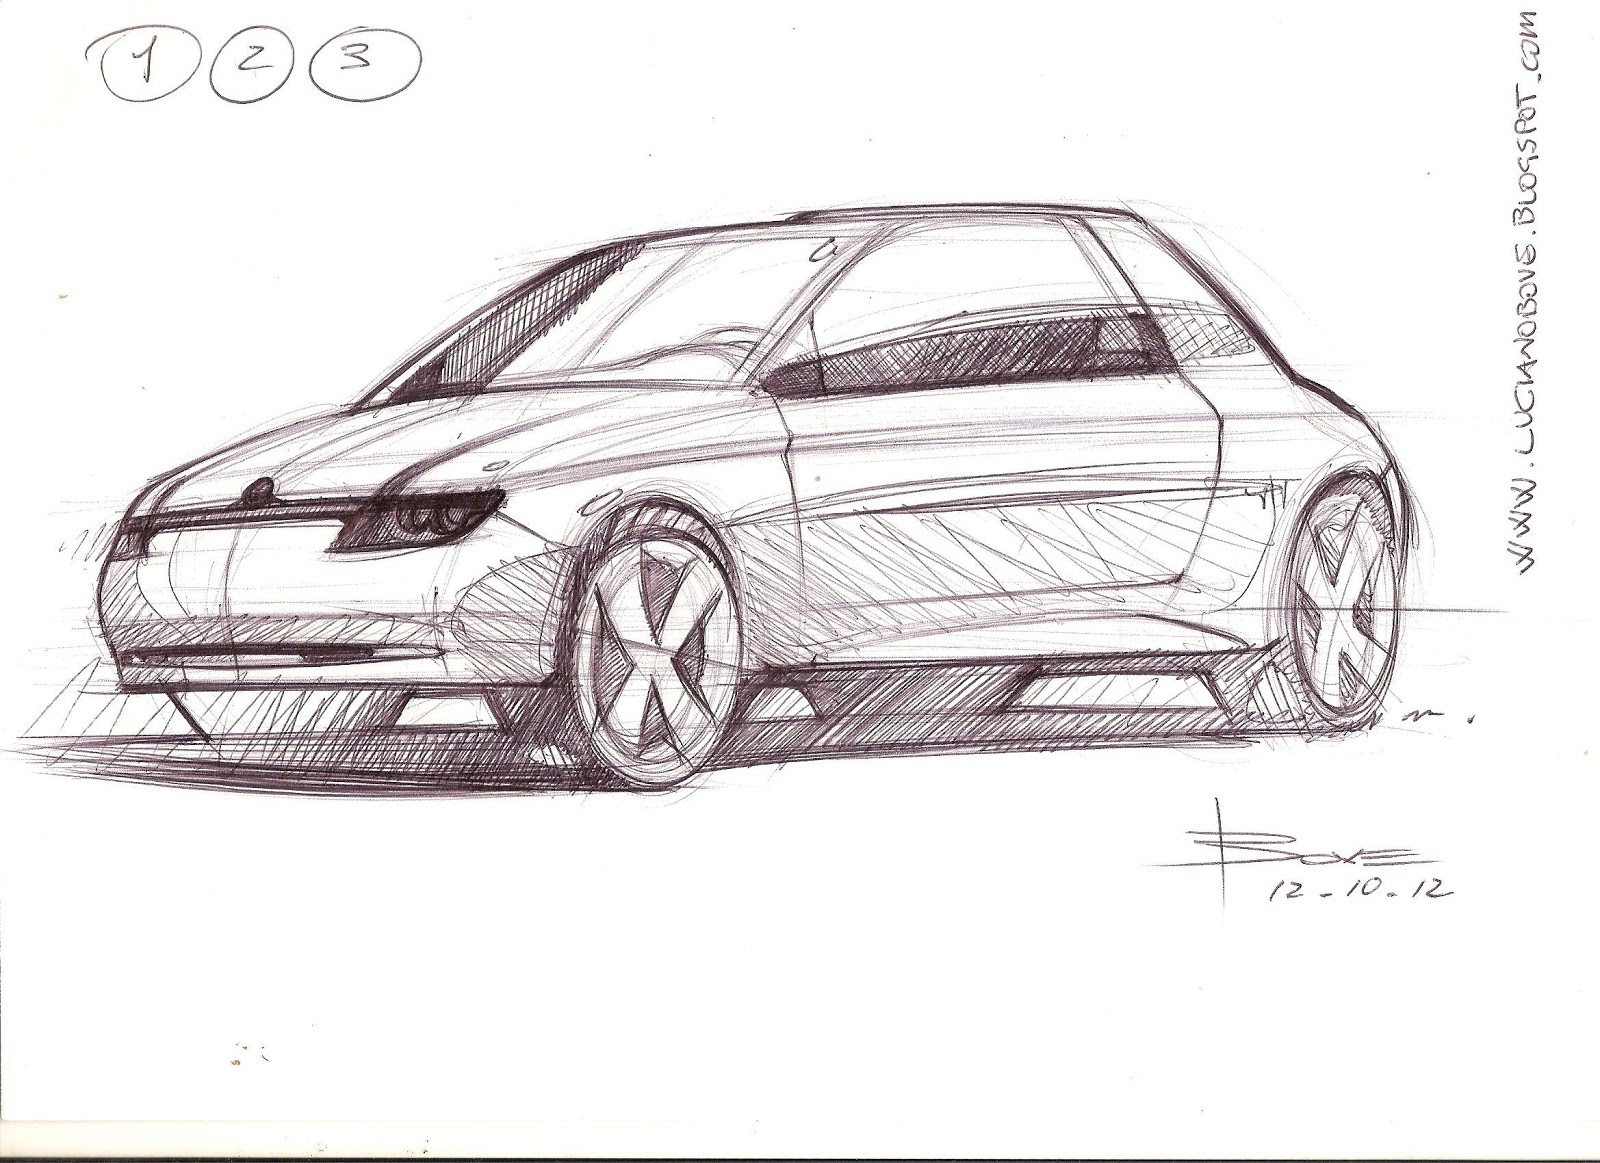 3/4 car sketch tutorial in 3 steps by Luciano Bove – www.lucianobove.com